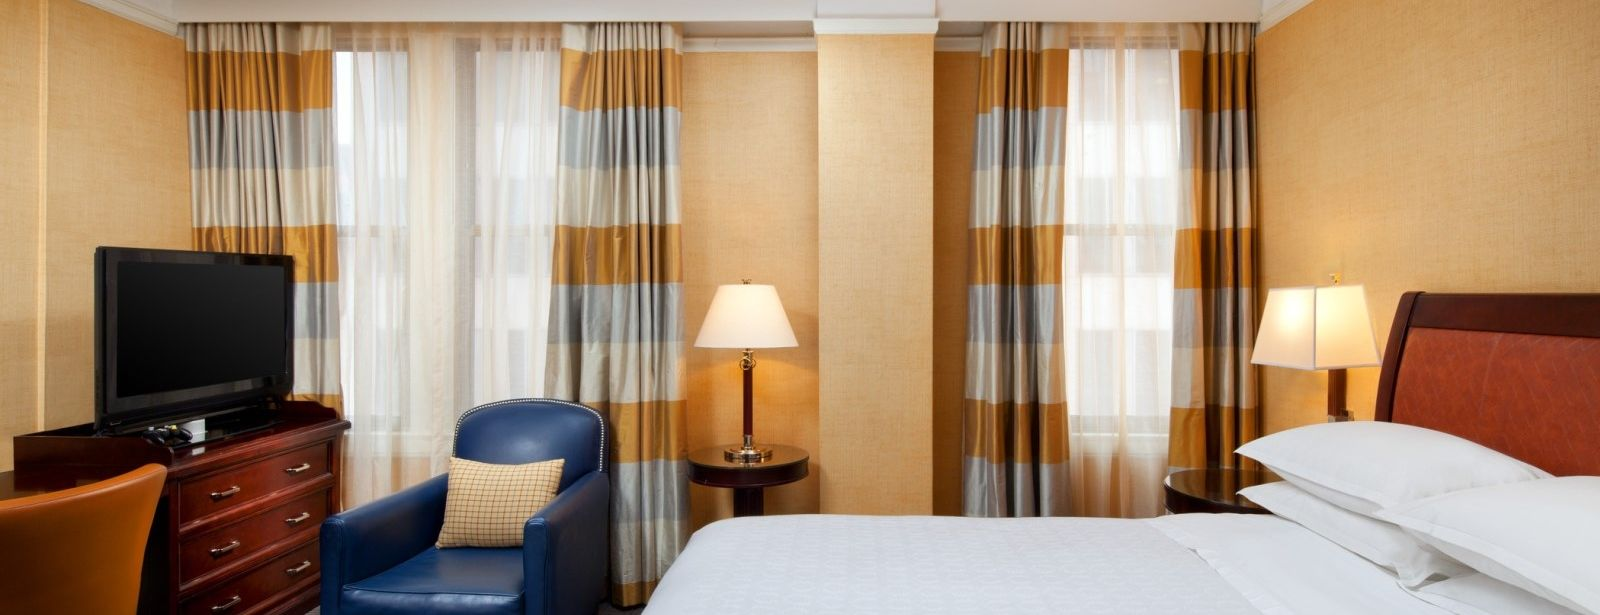 Standard Guest Rooms at the Sheraton Gunter Hotel